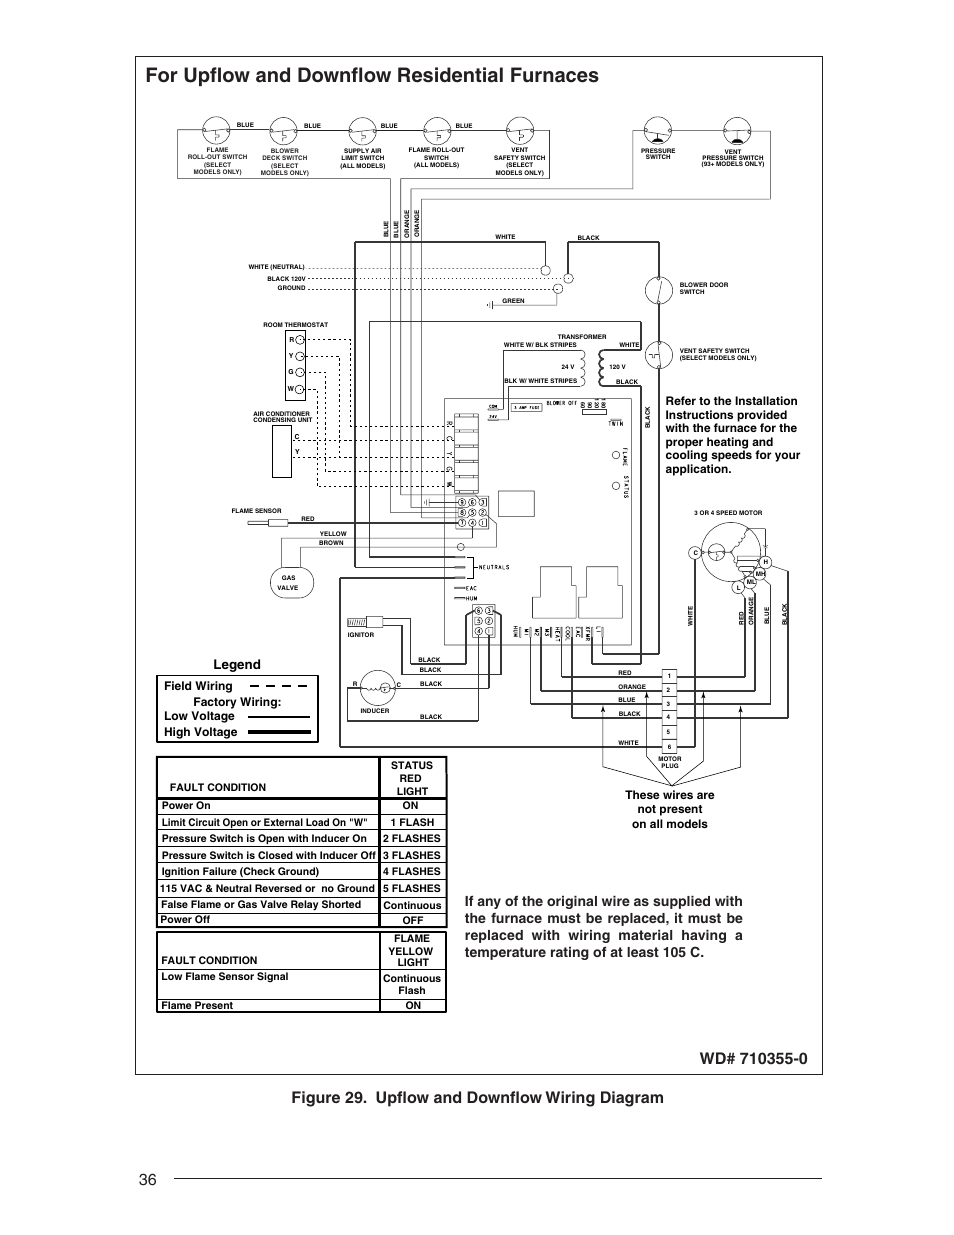 Nordyne Thermostat Wiring Diagram : Luxaire heat pump wiring diagram heating and air